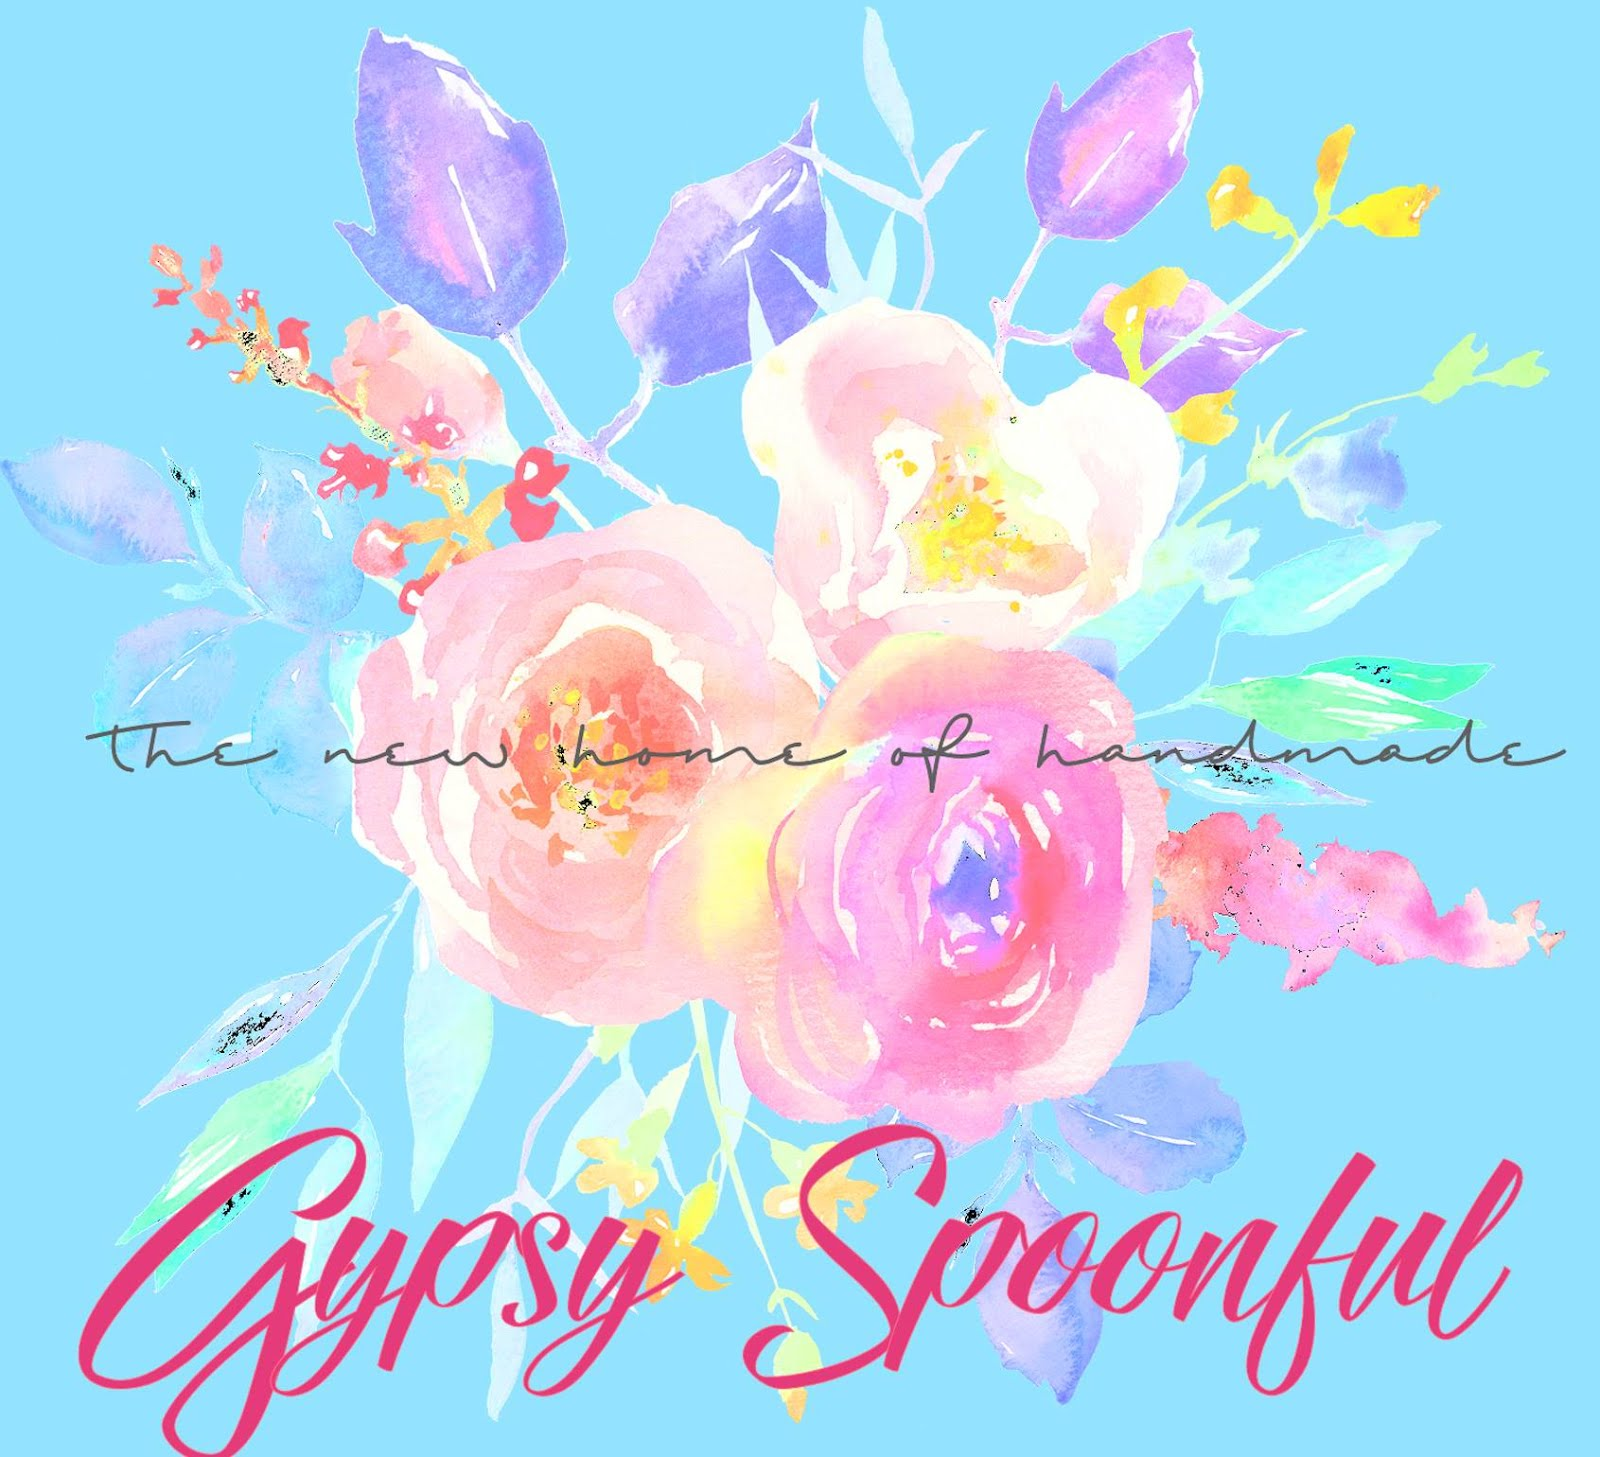 Gypsy Spoonful